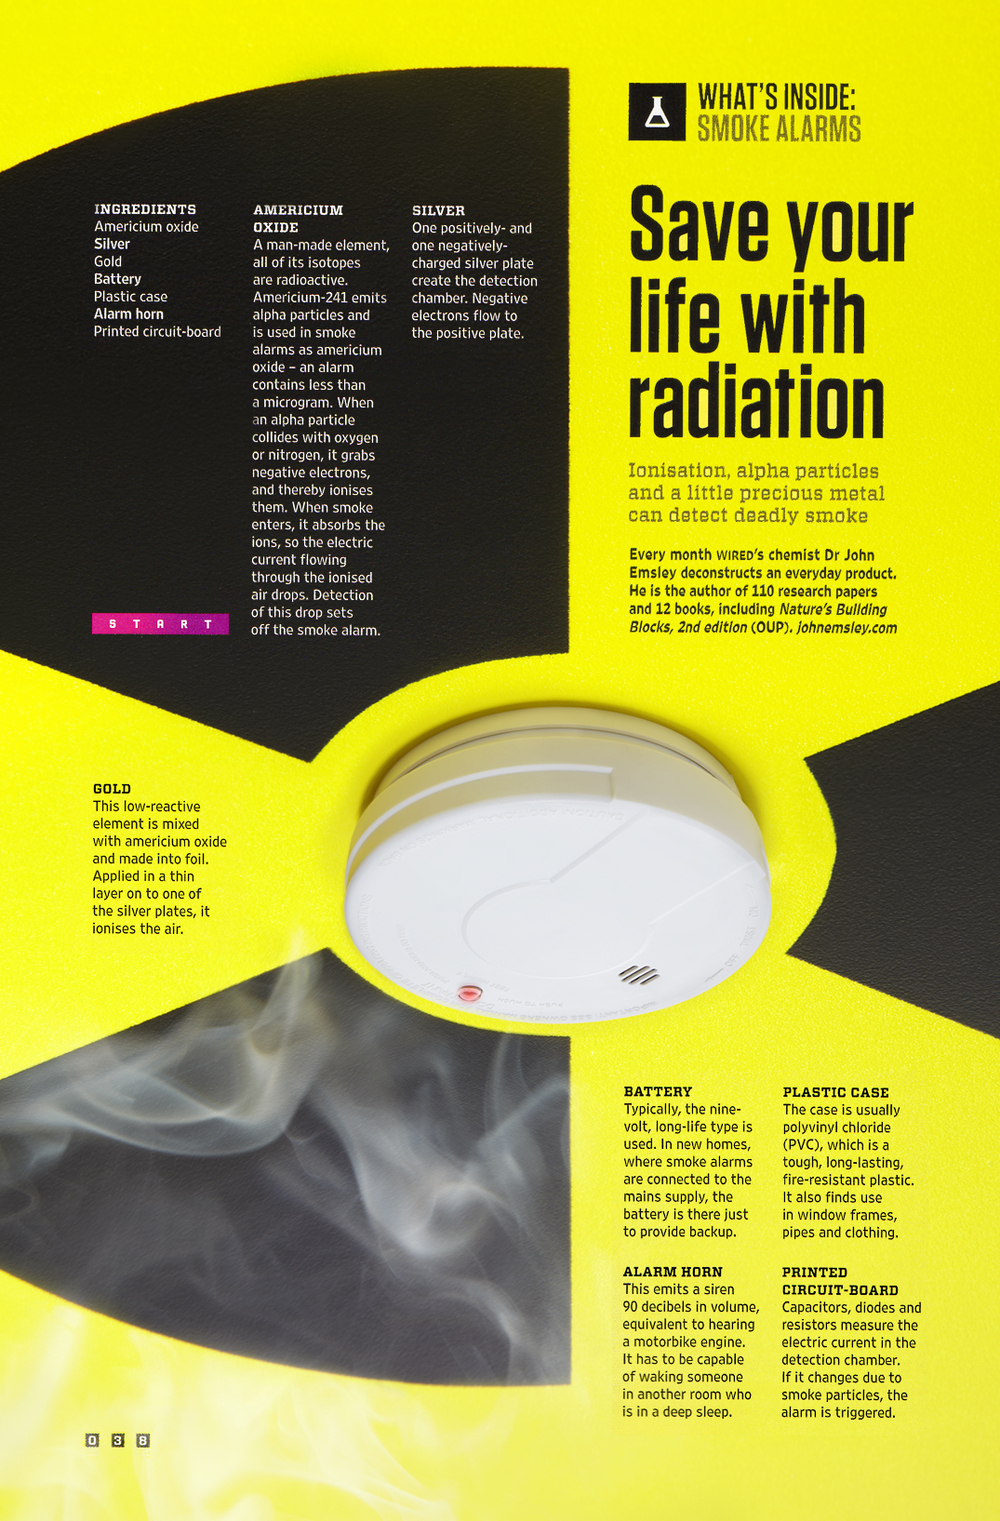 Wired: What's Inside Smoke Alarms